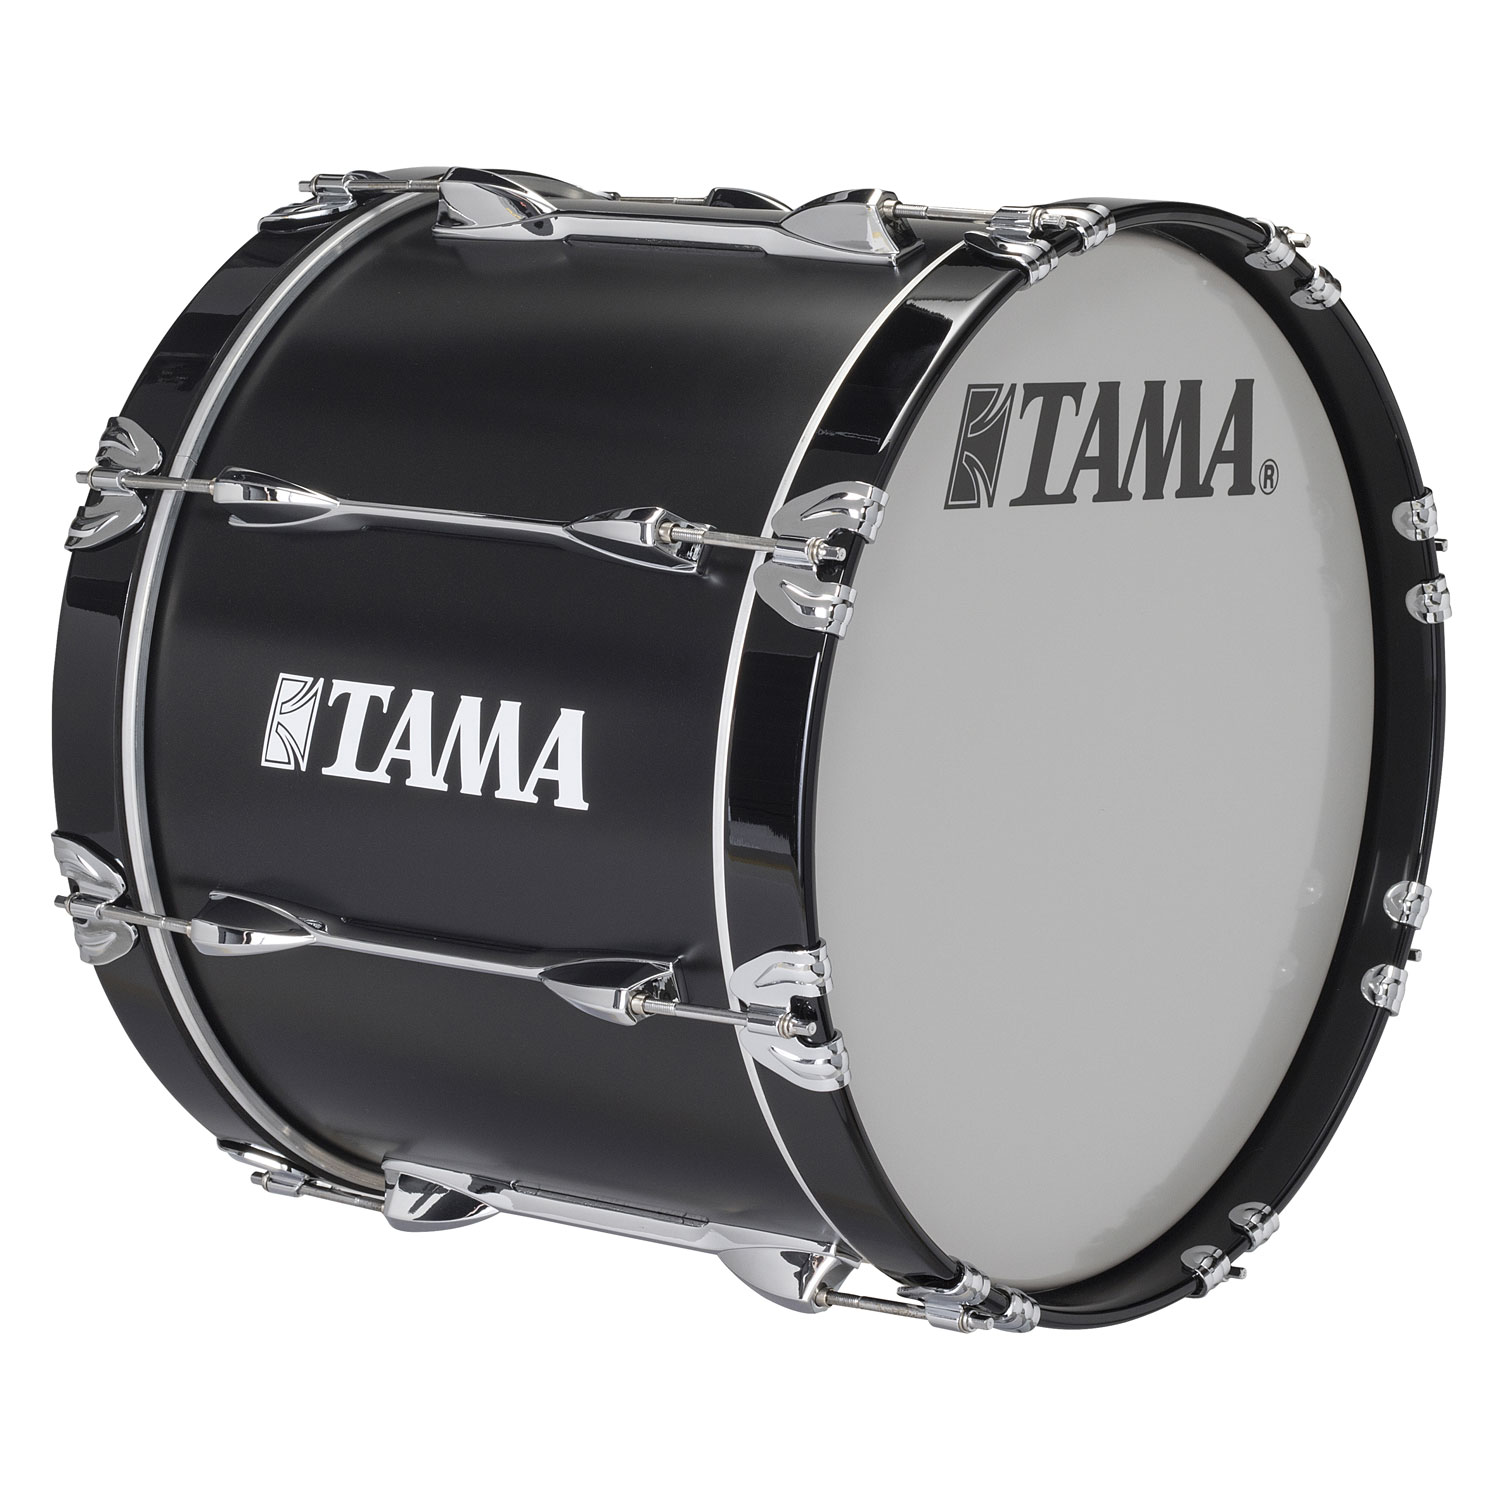 "Tama 16"" StarLight Marching Bass Drum in Satin Black Lacquer"